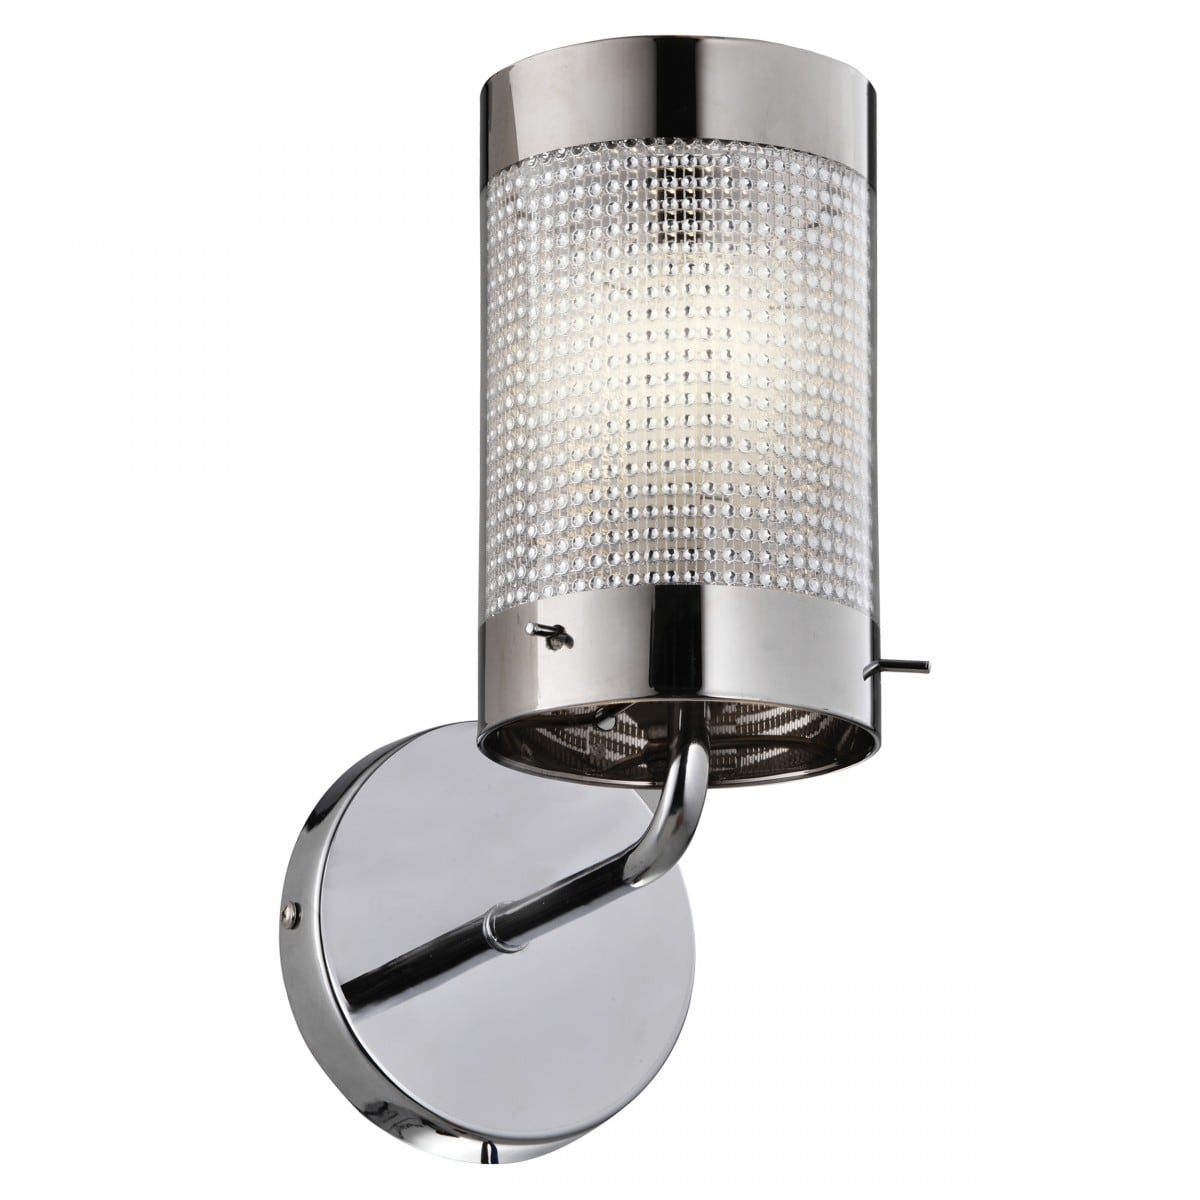 Monte wall lamp